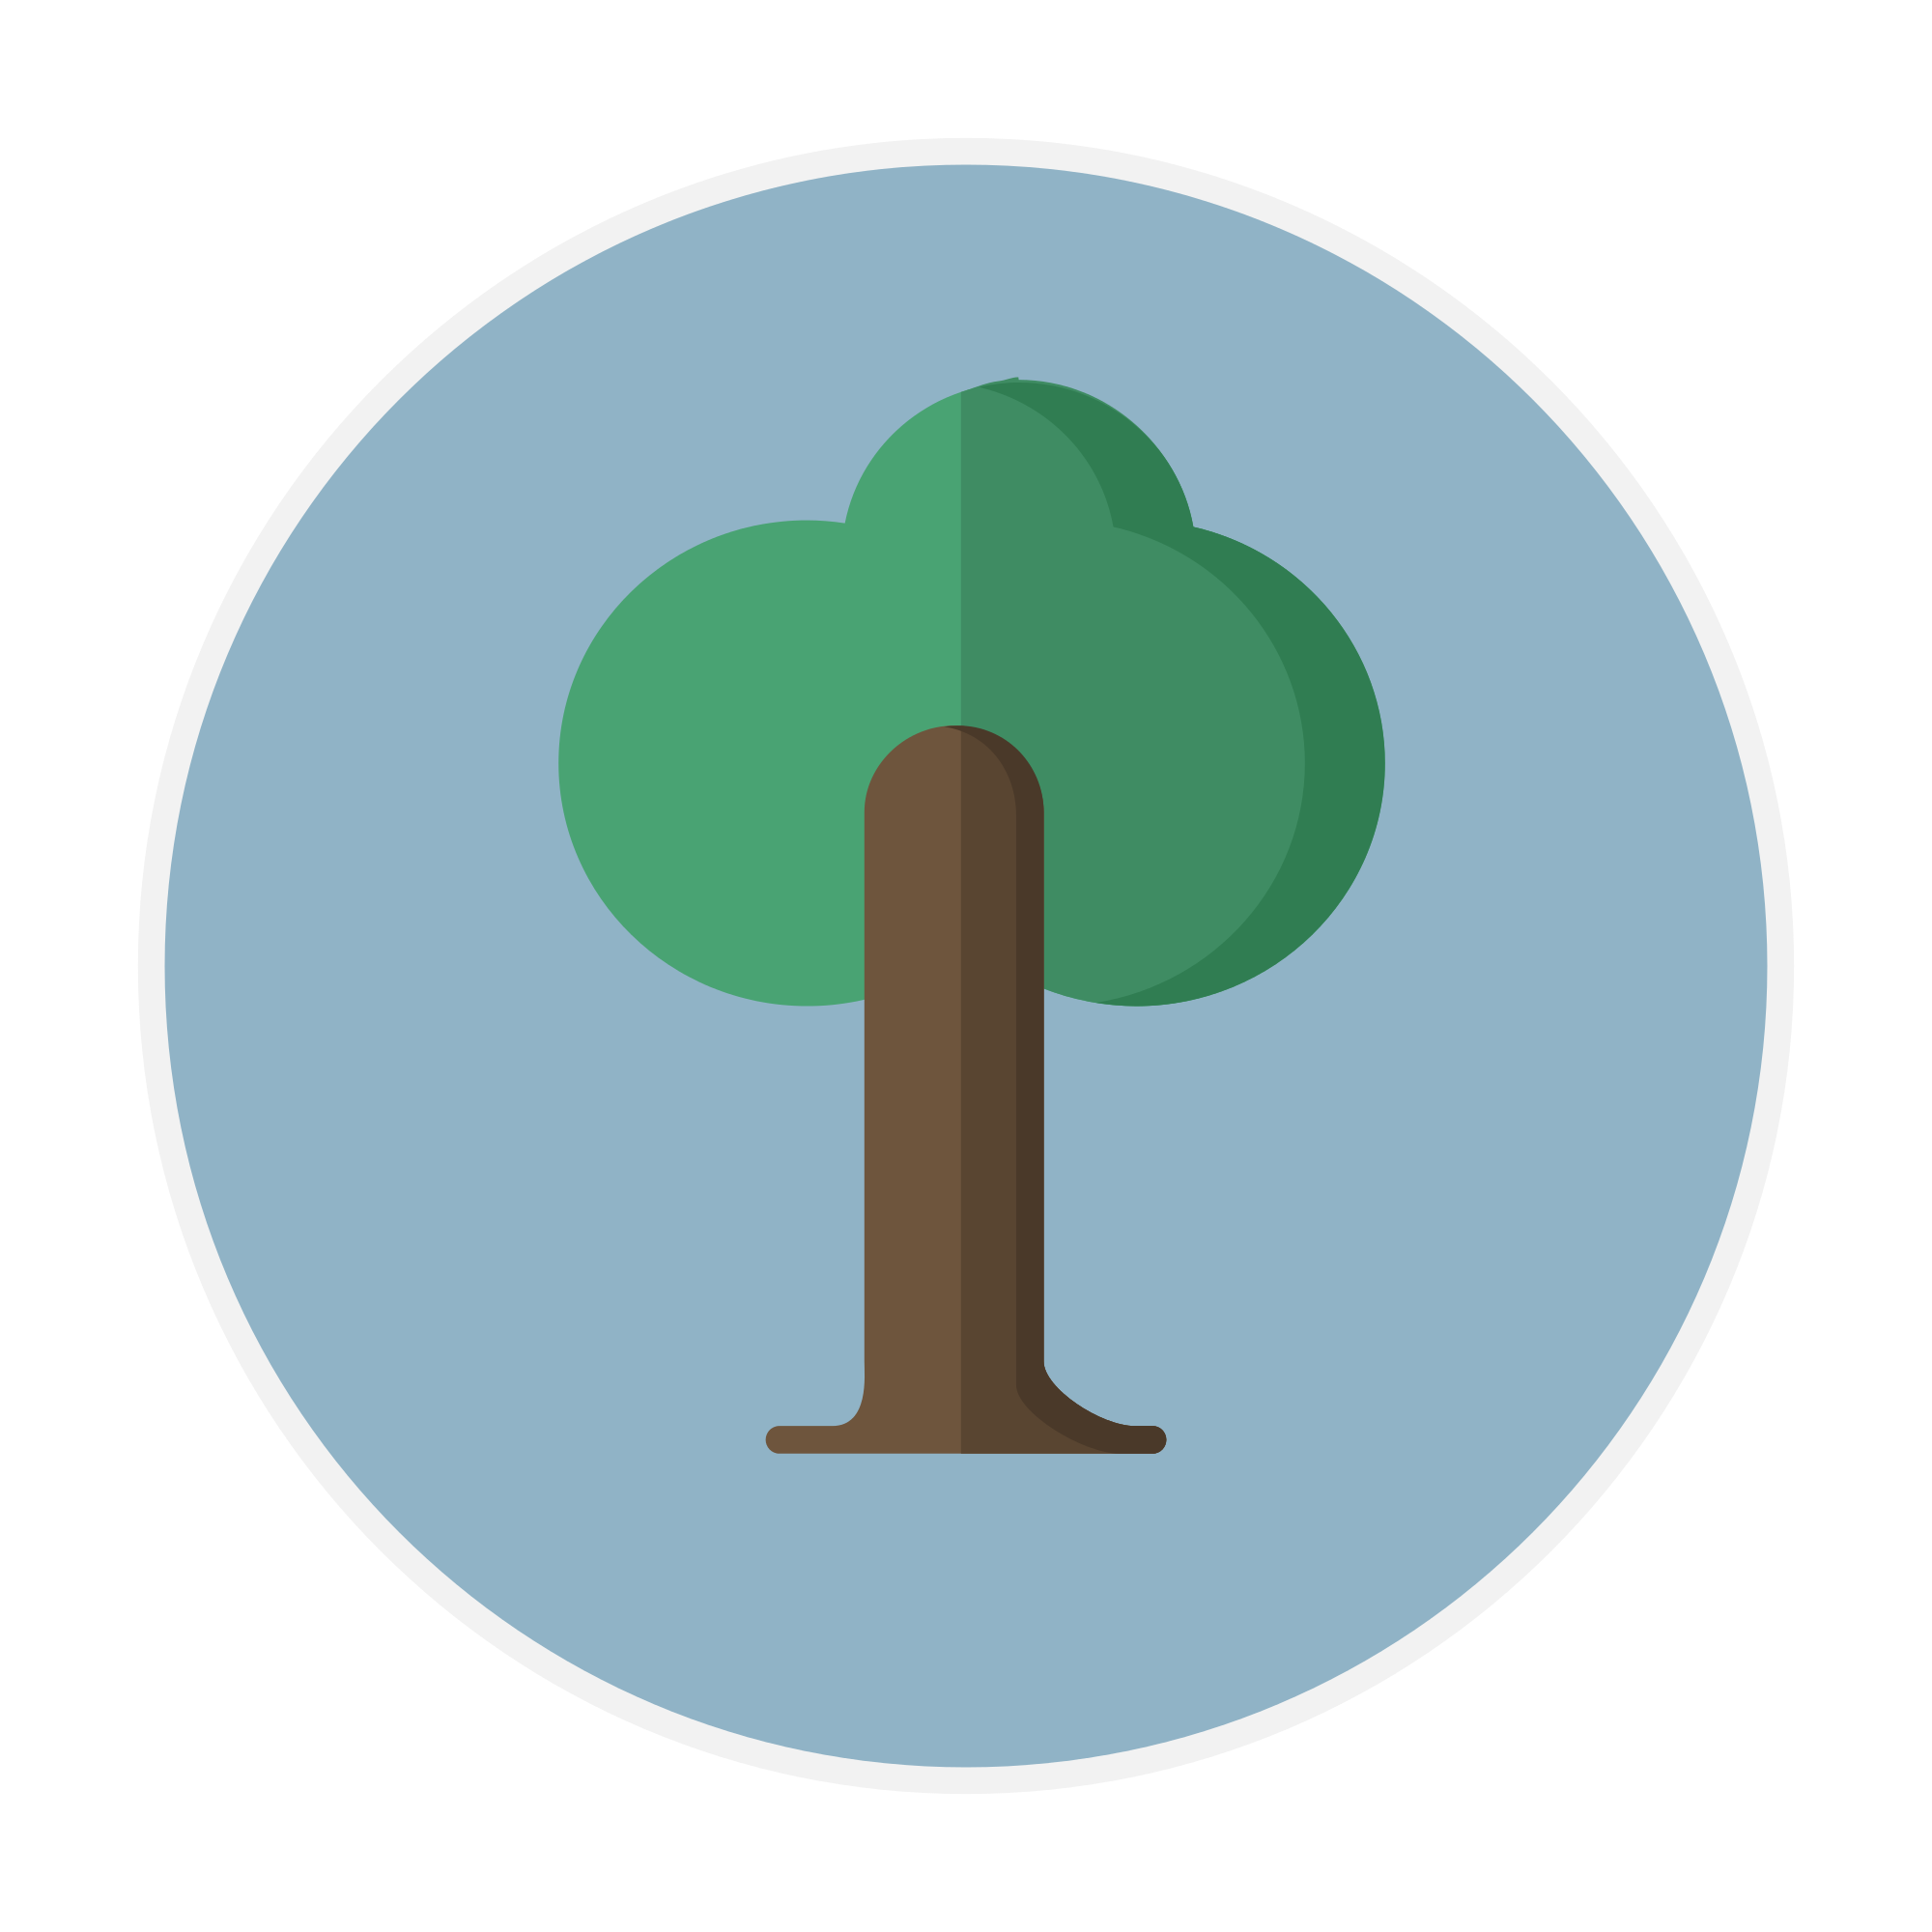 Tree icon png. File creative tail halloween